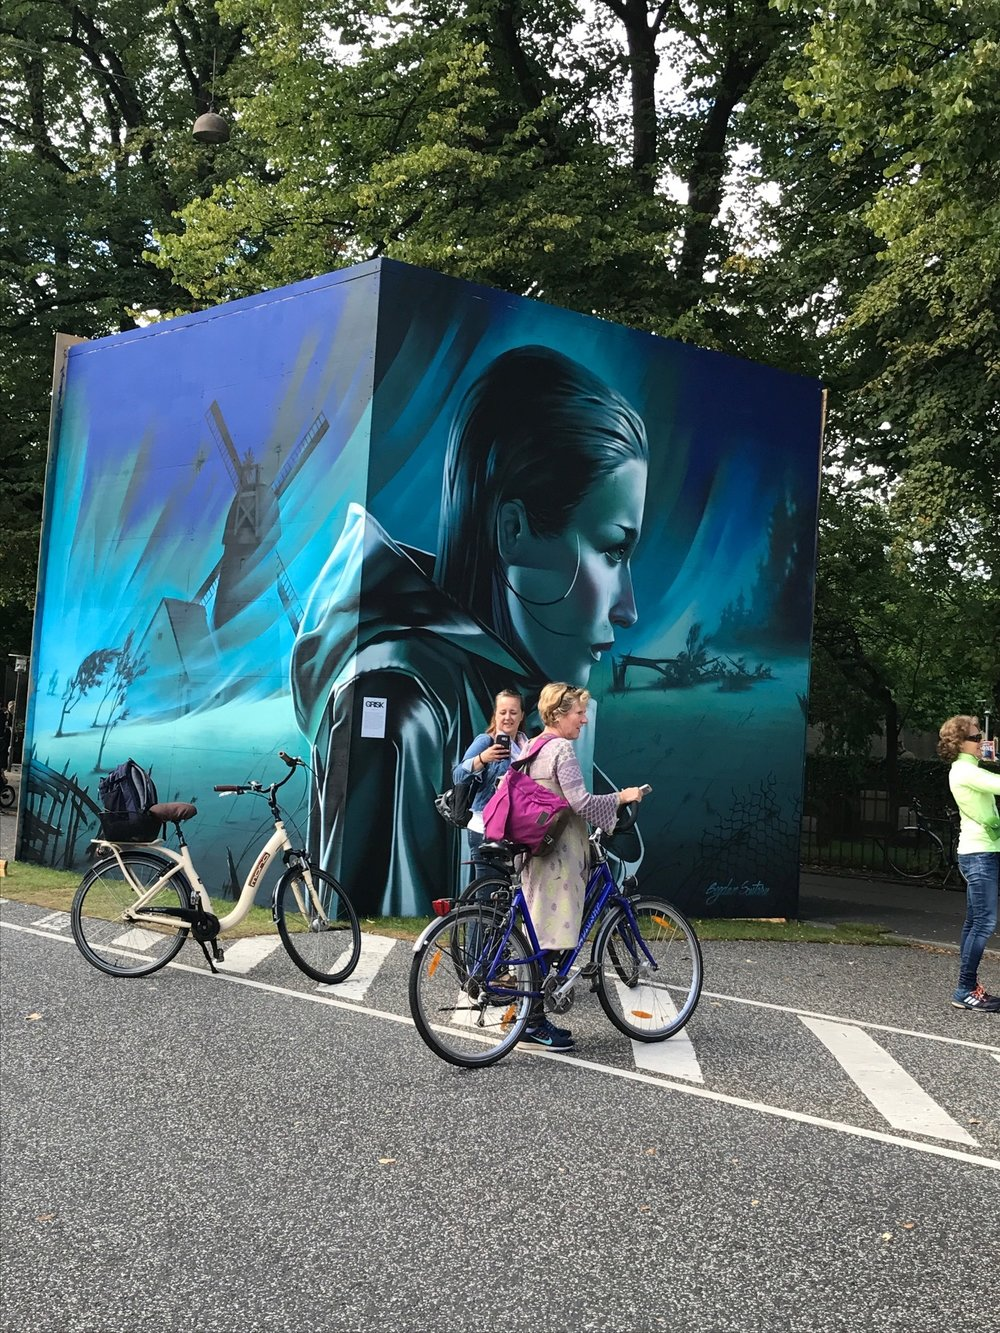 …and long walks filled with public art installations and quintessential Danish streets.